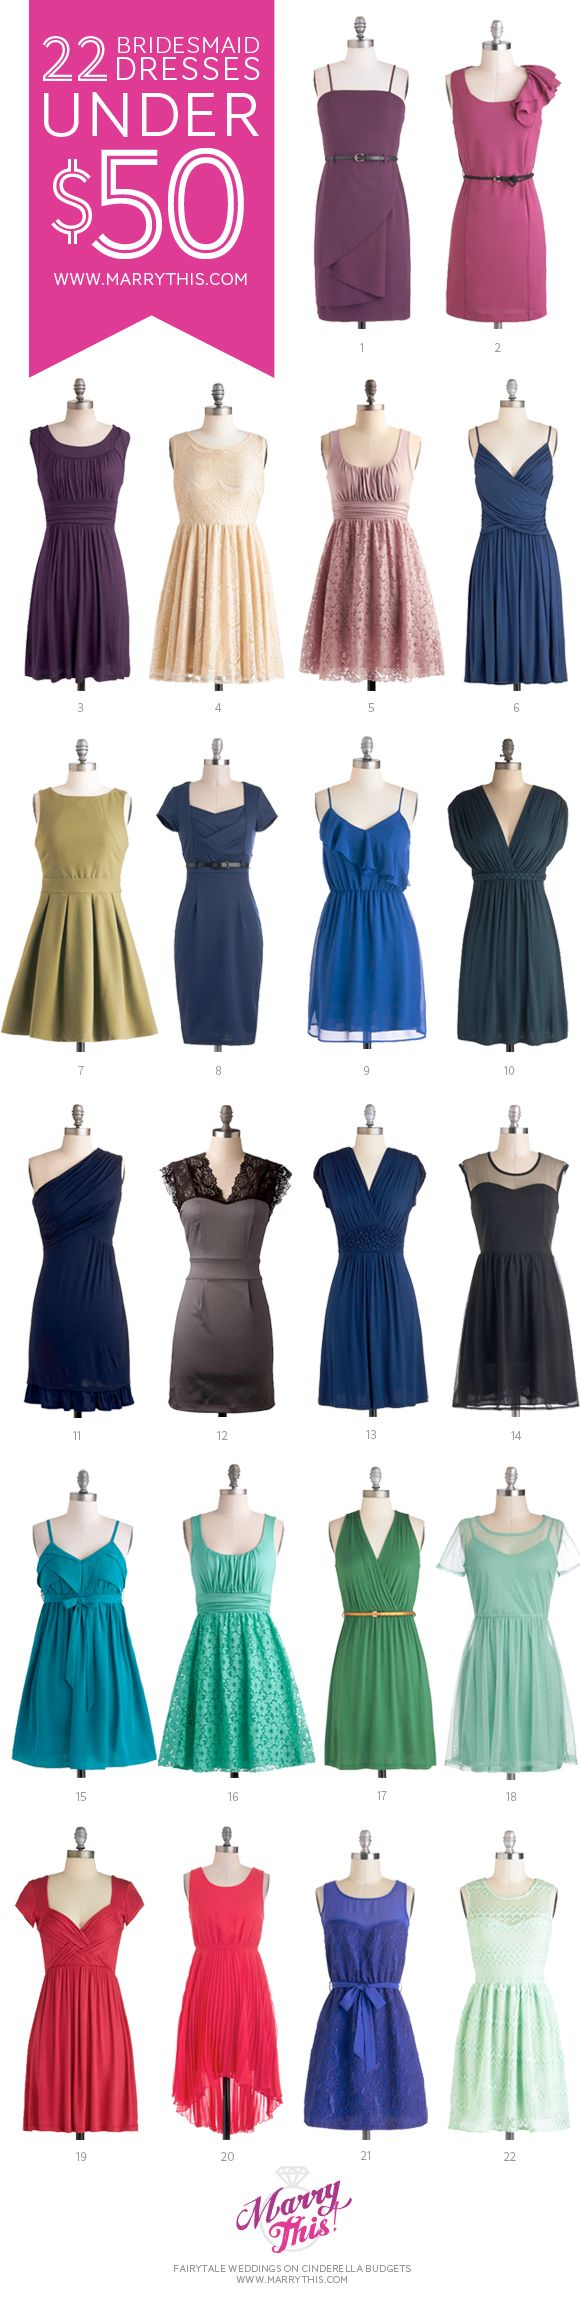 Bridesmaid Dress Roundup!22 Dresses Under $50by Allison on April 24, 2013 in Fashion with 6 Comments